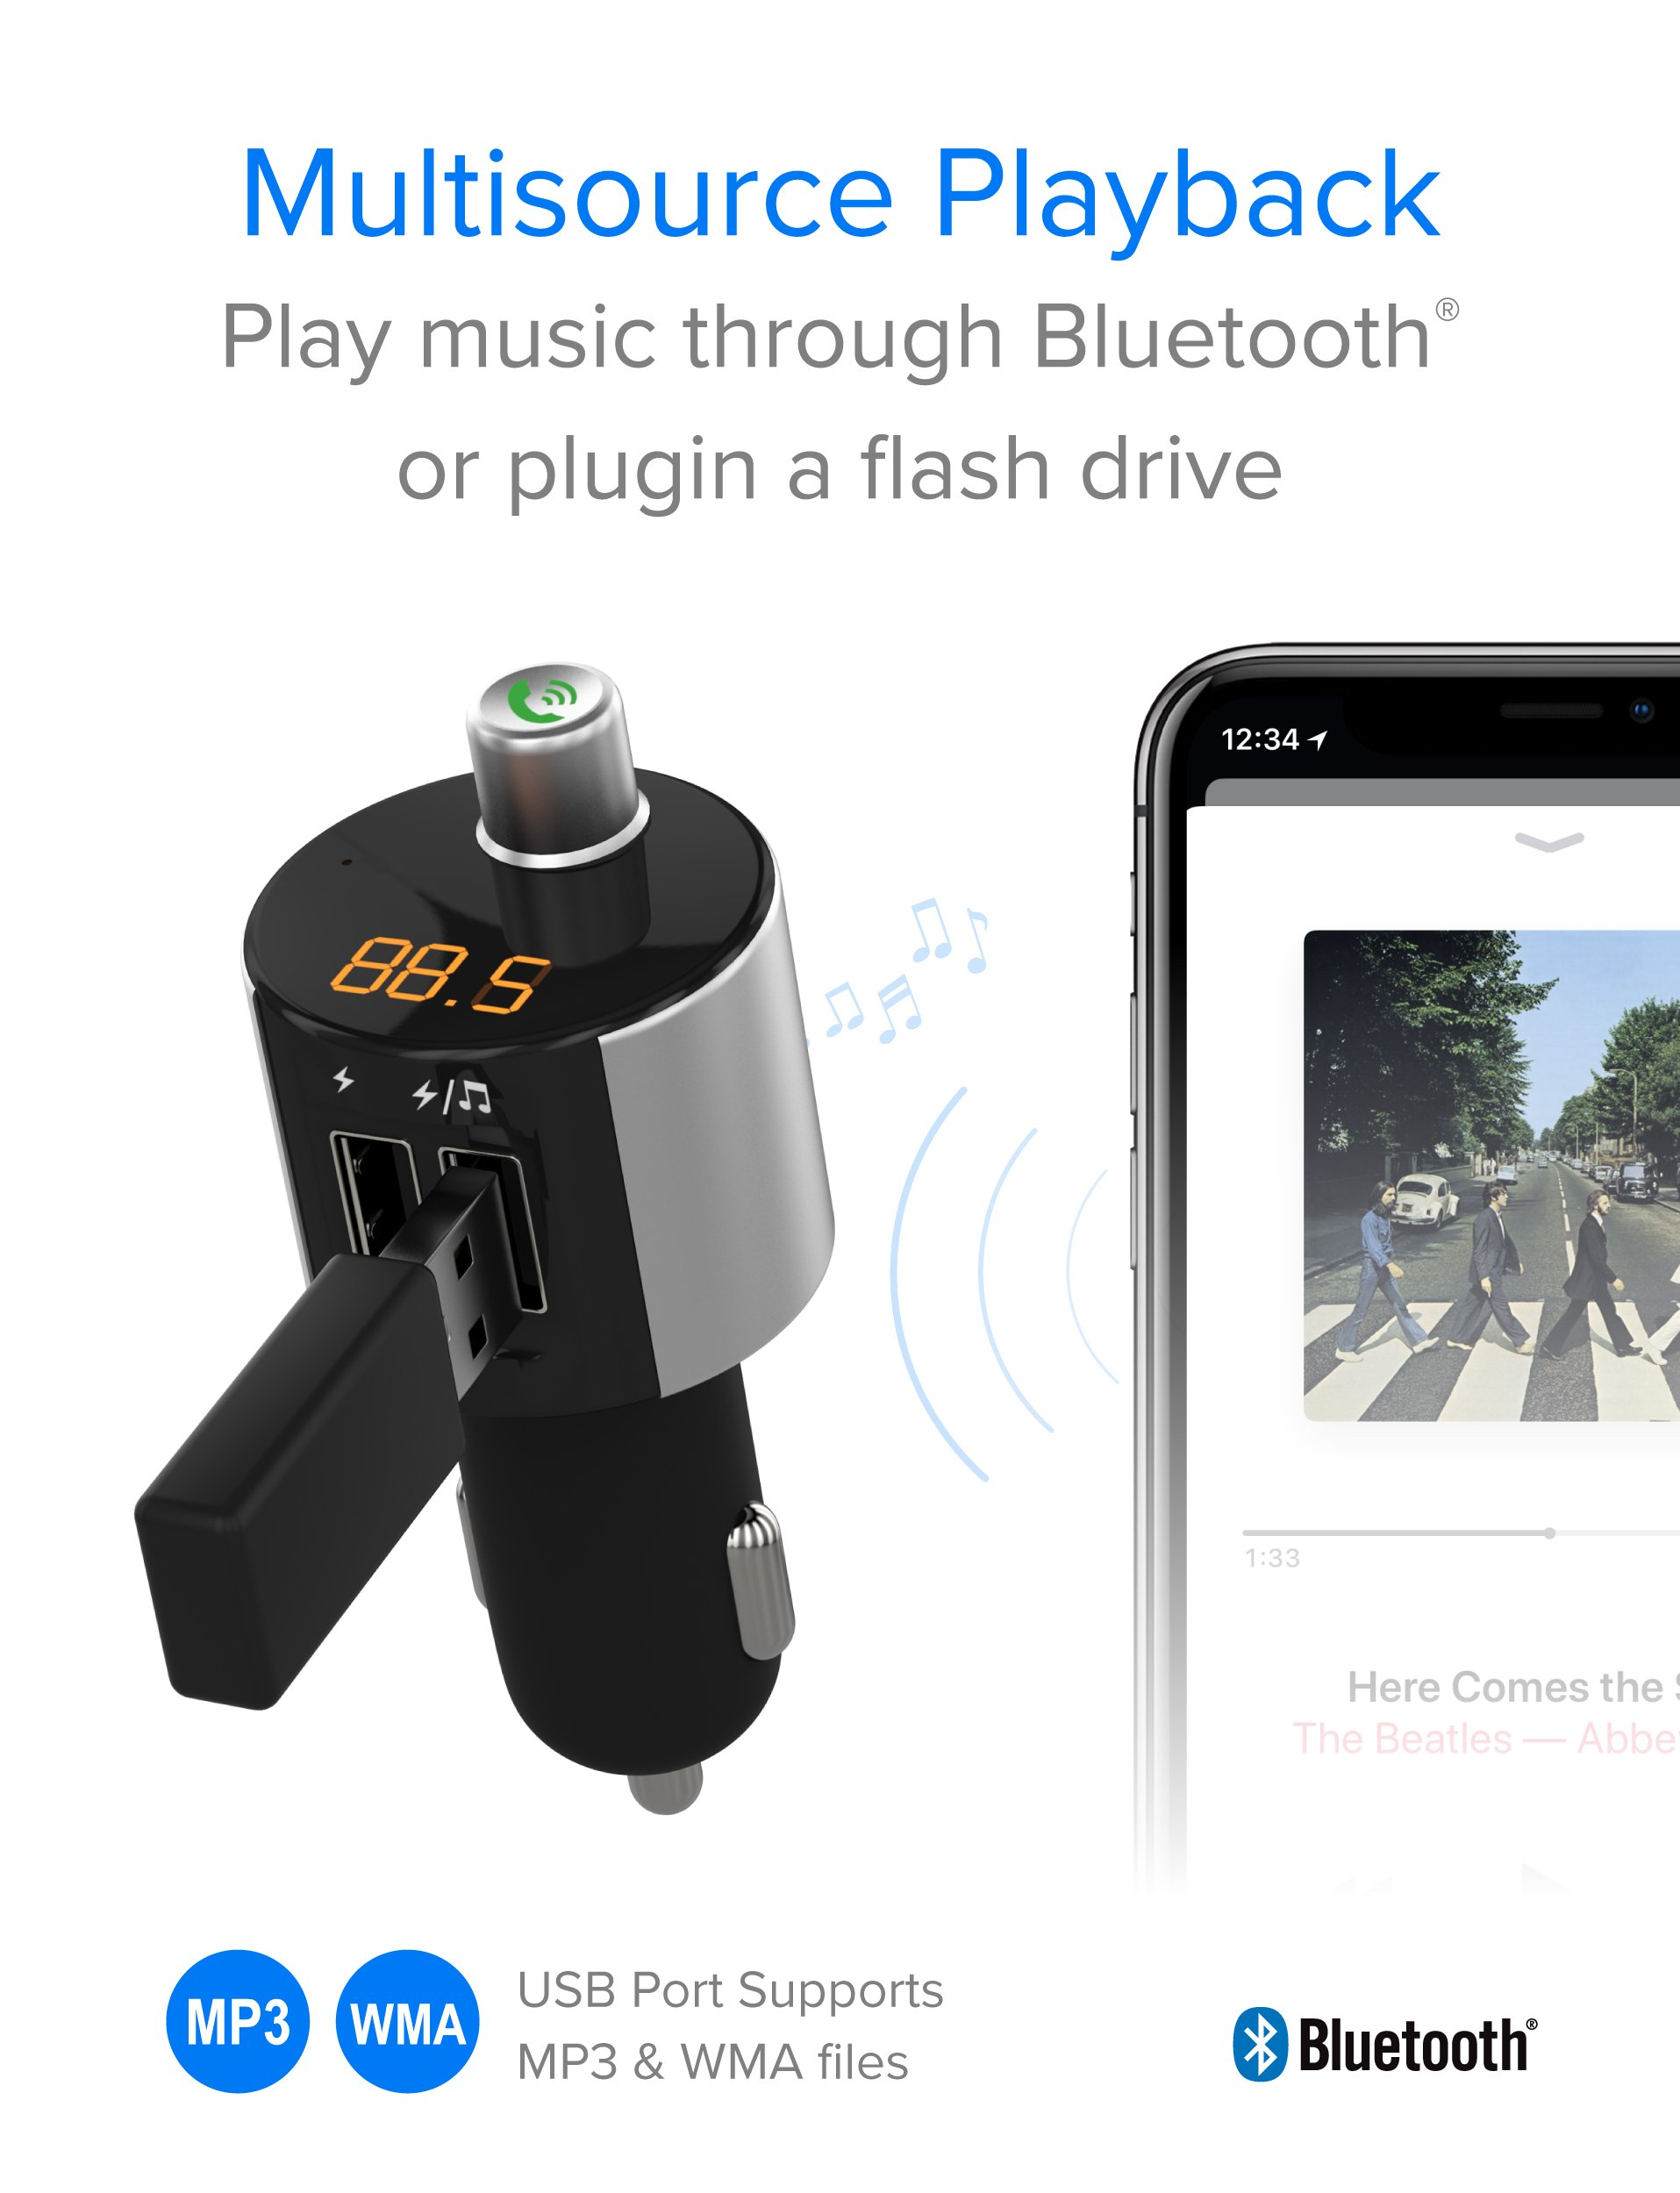 Just Wireless Bluetooth FM Transmitter, Wireless Bluetooth FM Radio Transmitter with Hands-Free Calling and 2 USB Ports by Just Wireless (Image #4)